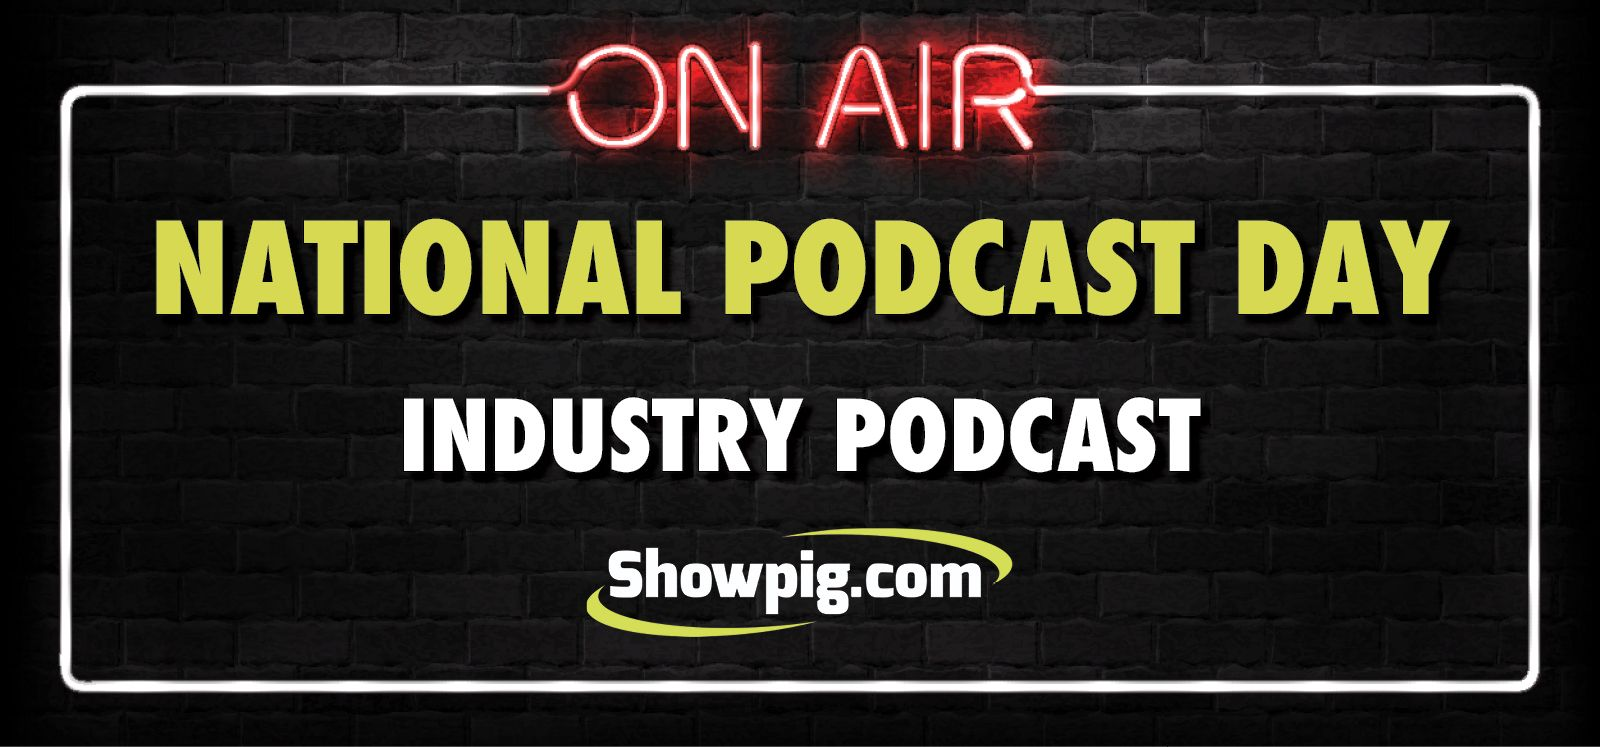 Featured image for the article titled National Podcast Day: Industry Podcasts